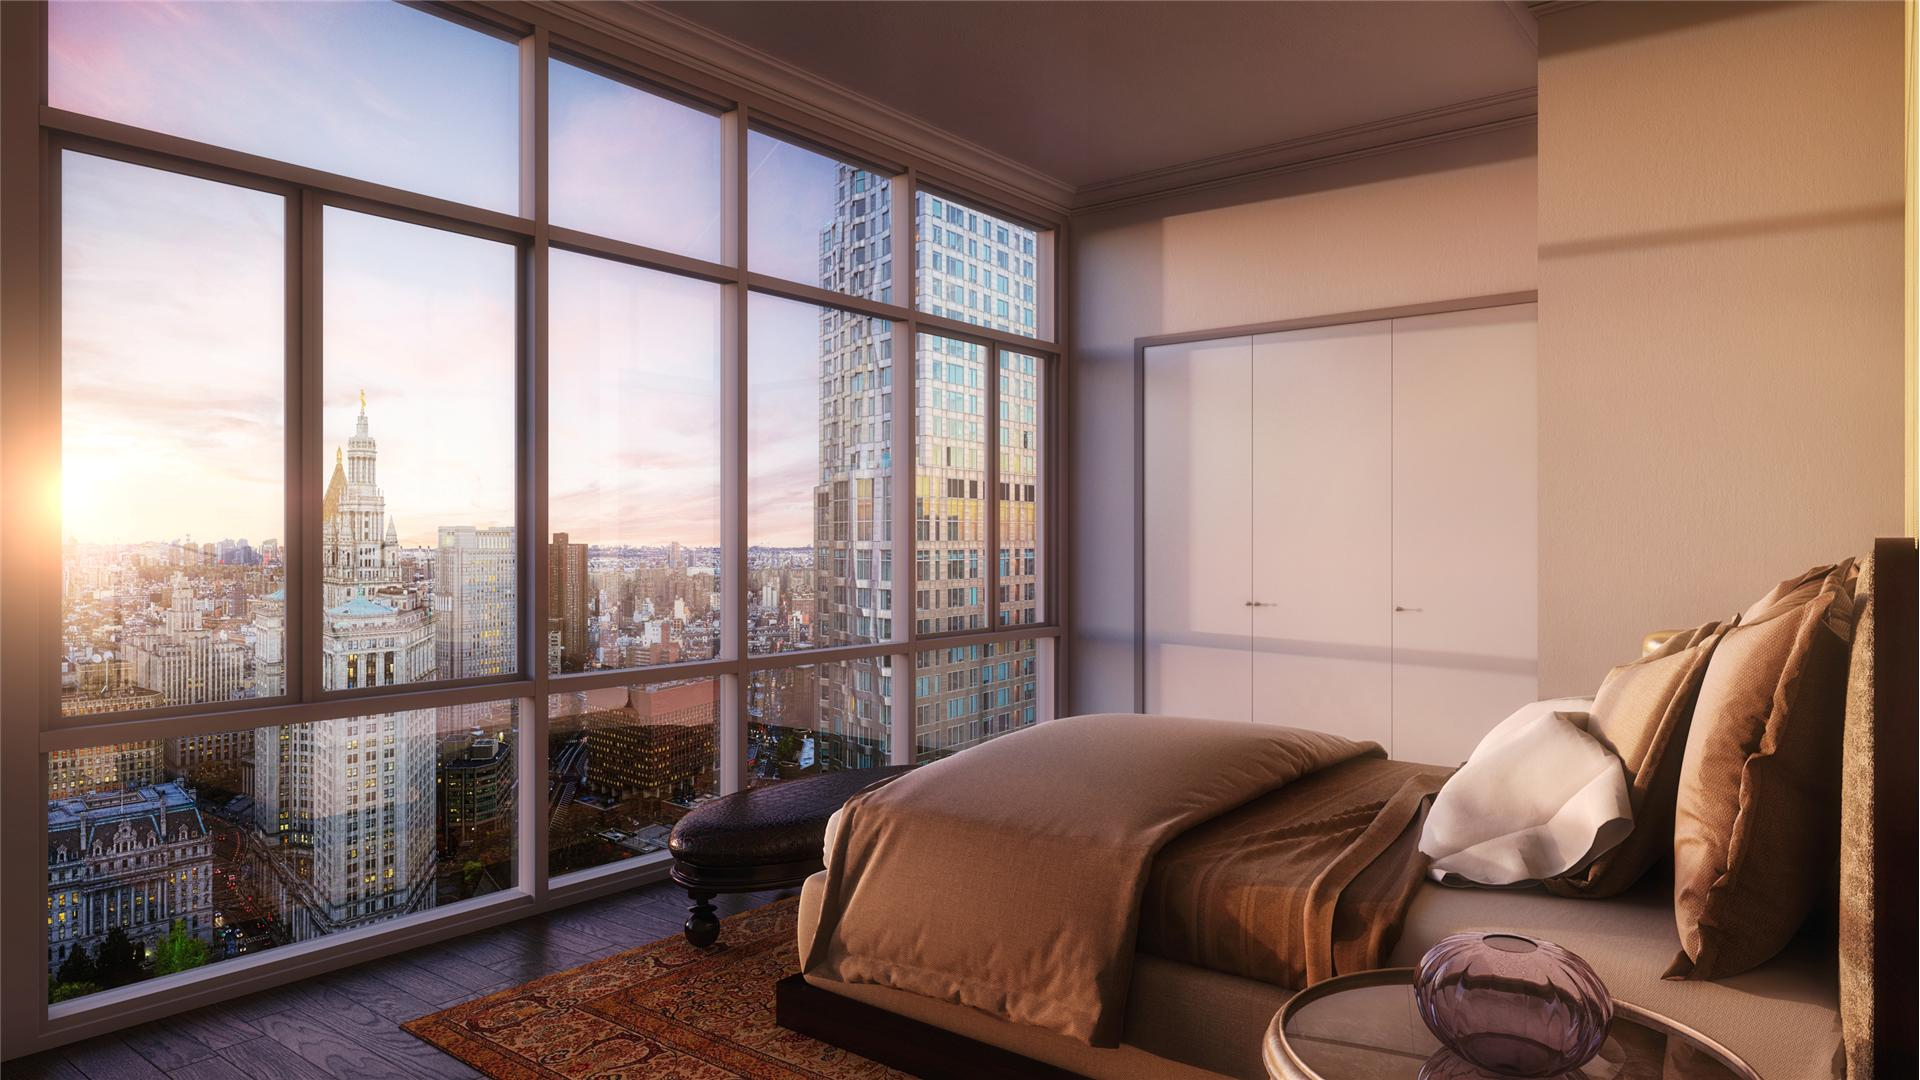 Condominium for Sale at The Beekman Residences, The Beekman Residences, 5 Beekman Street New York, New York 10038 United States